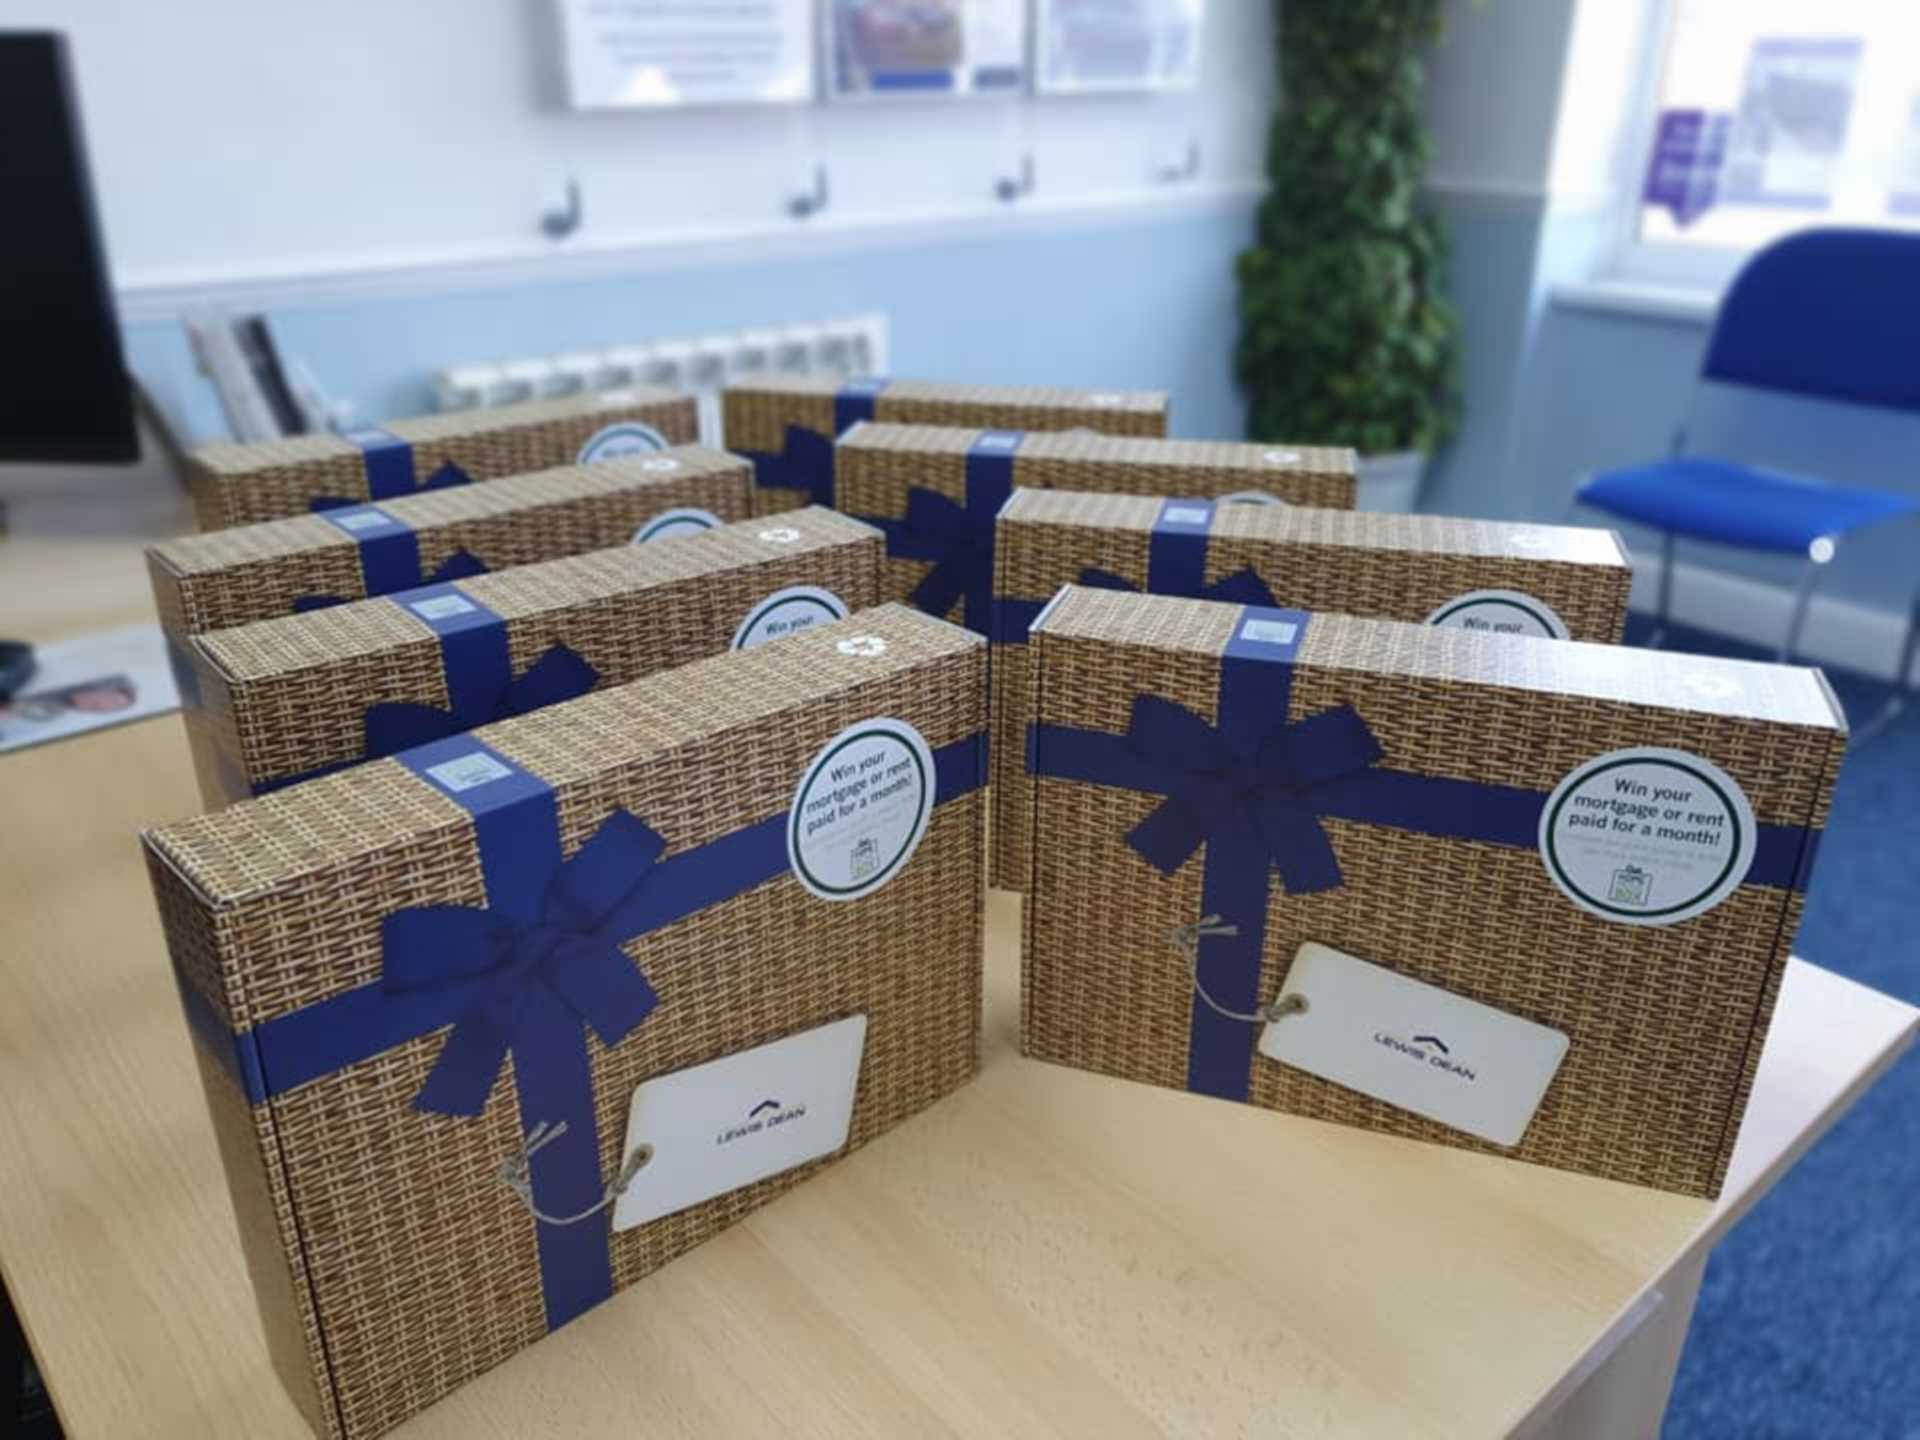 Friday is Moving Day - Customer Gift Boxes Ready